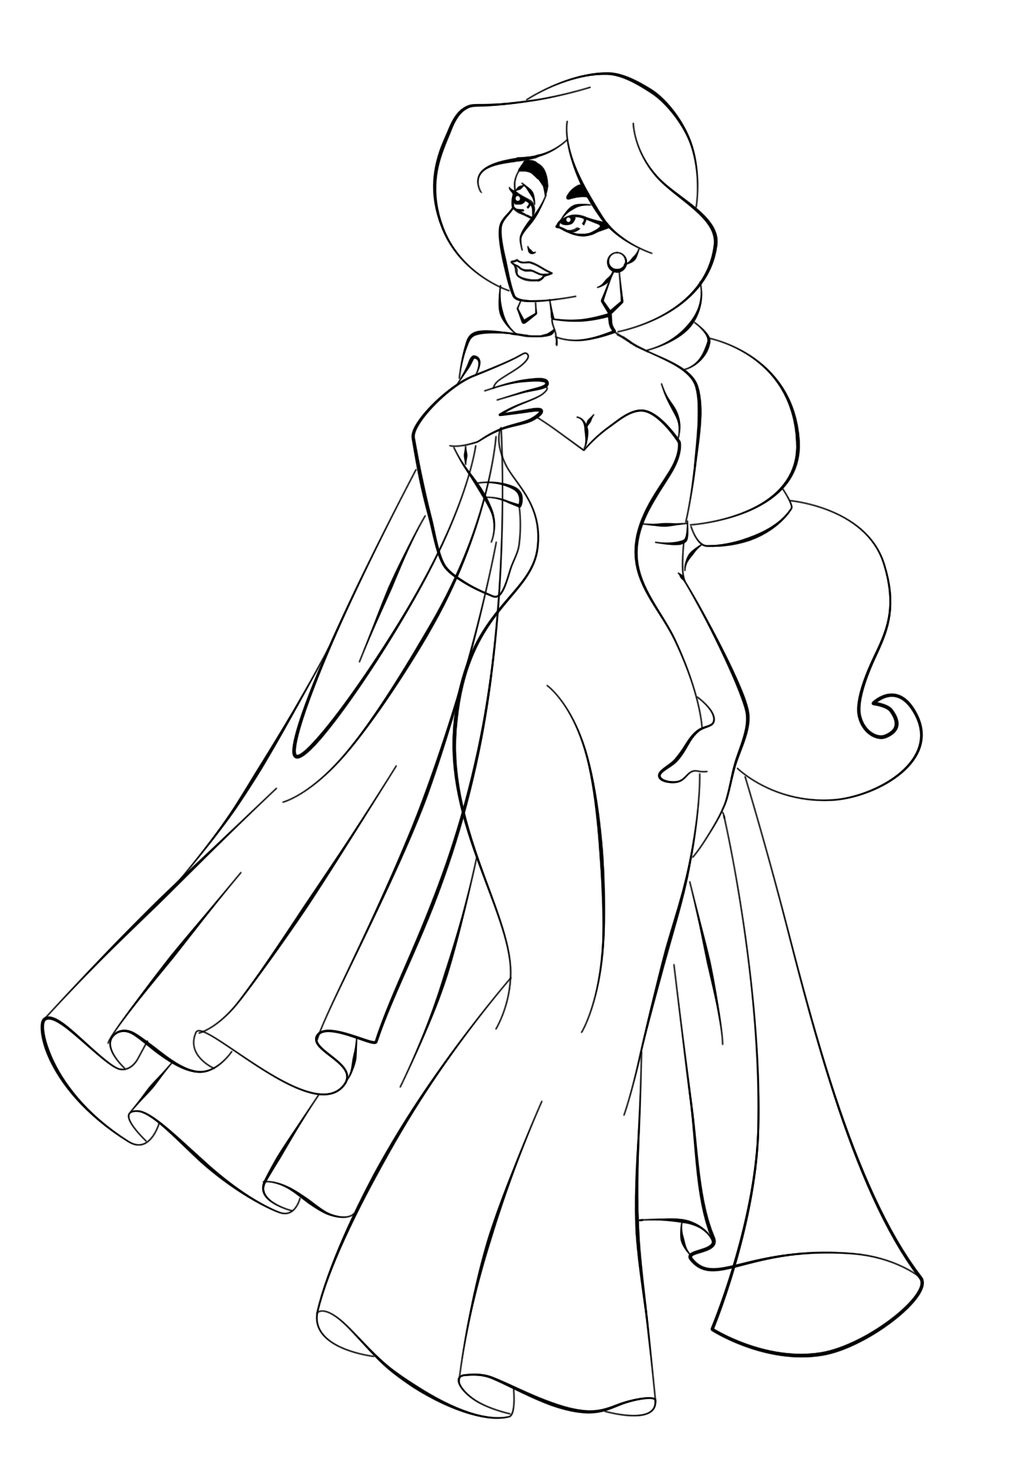 Free Online Coloring Pages  Free Printable Jasmine Coloring Pages For Kids Best